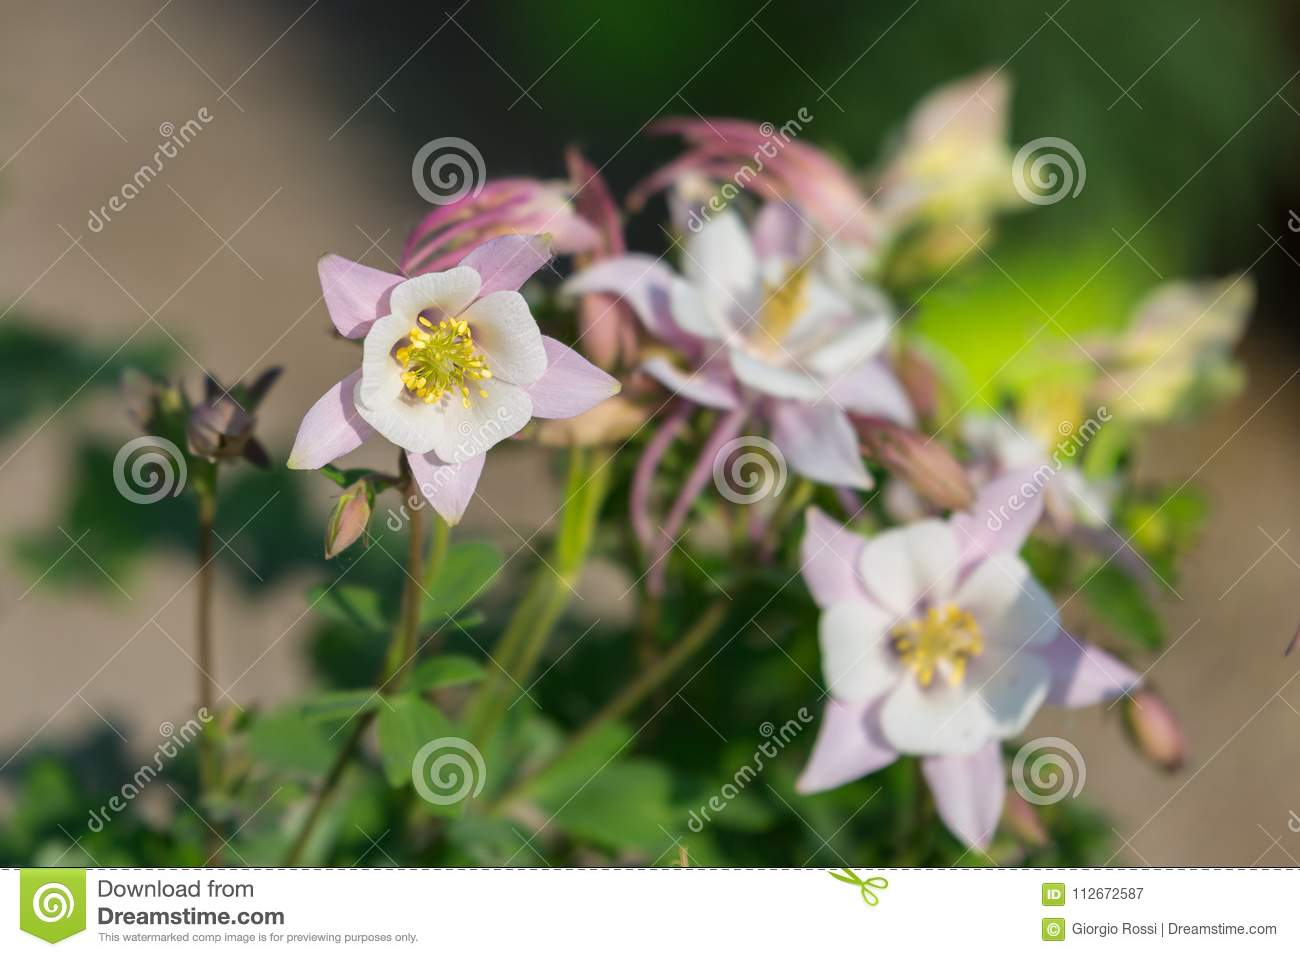 Beautiful White Flowers With Four Petals In A Garden Stock Image